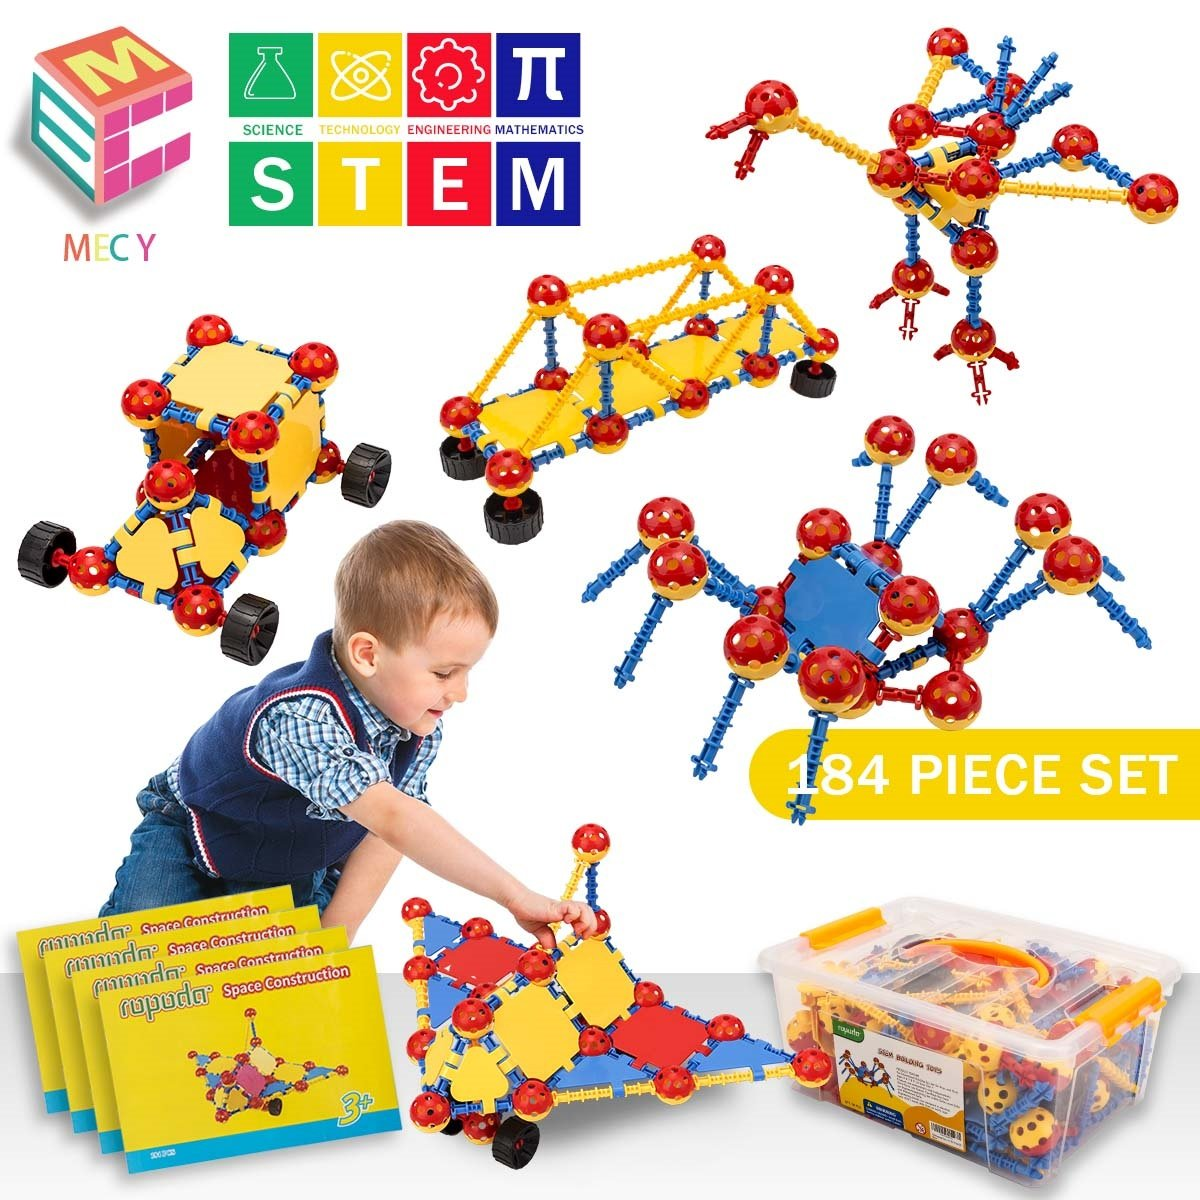 STEM Learning Toys   Creative Construction Engineering   Original 184 Piece Educational Building Blocks Set for Boys and Girls Ages 5 6 7 8 9 10 Year Old   Creative Game Kit   Best Toy Gift for Kids